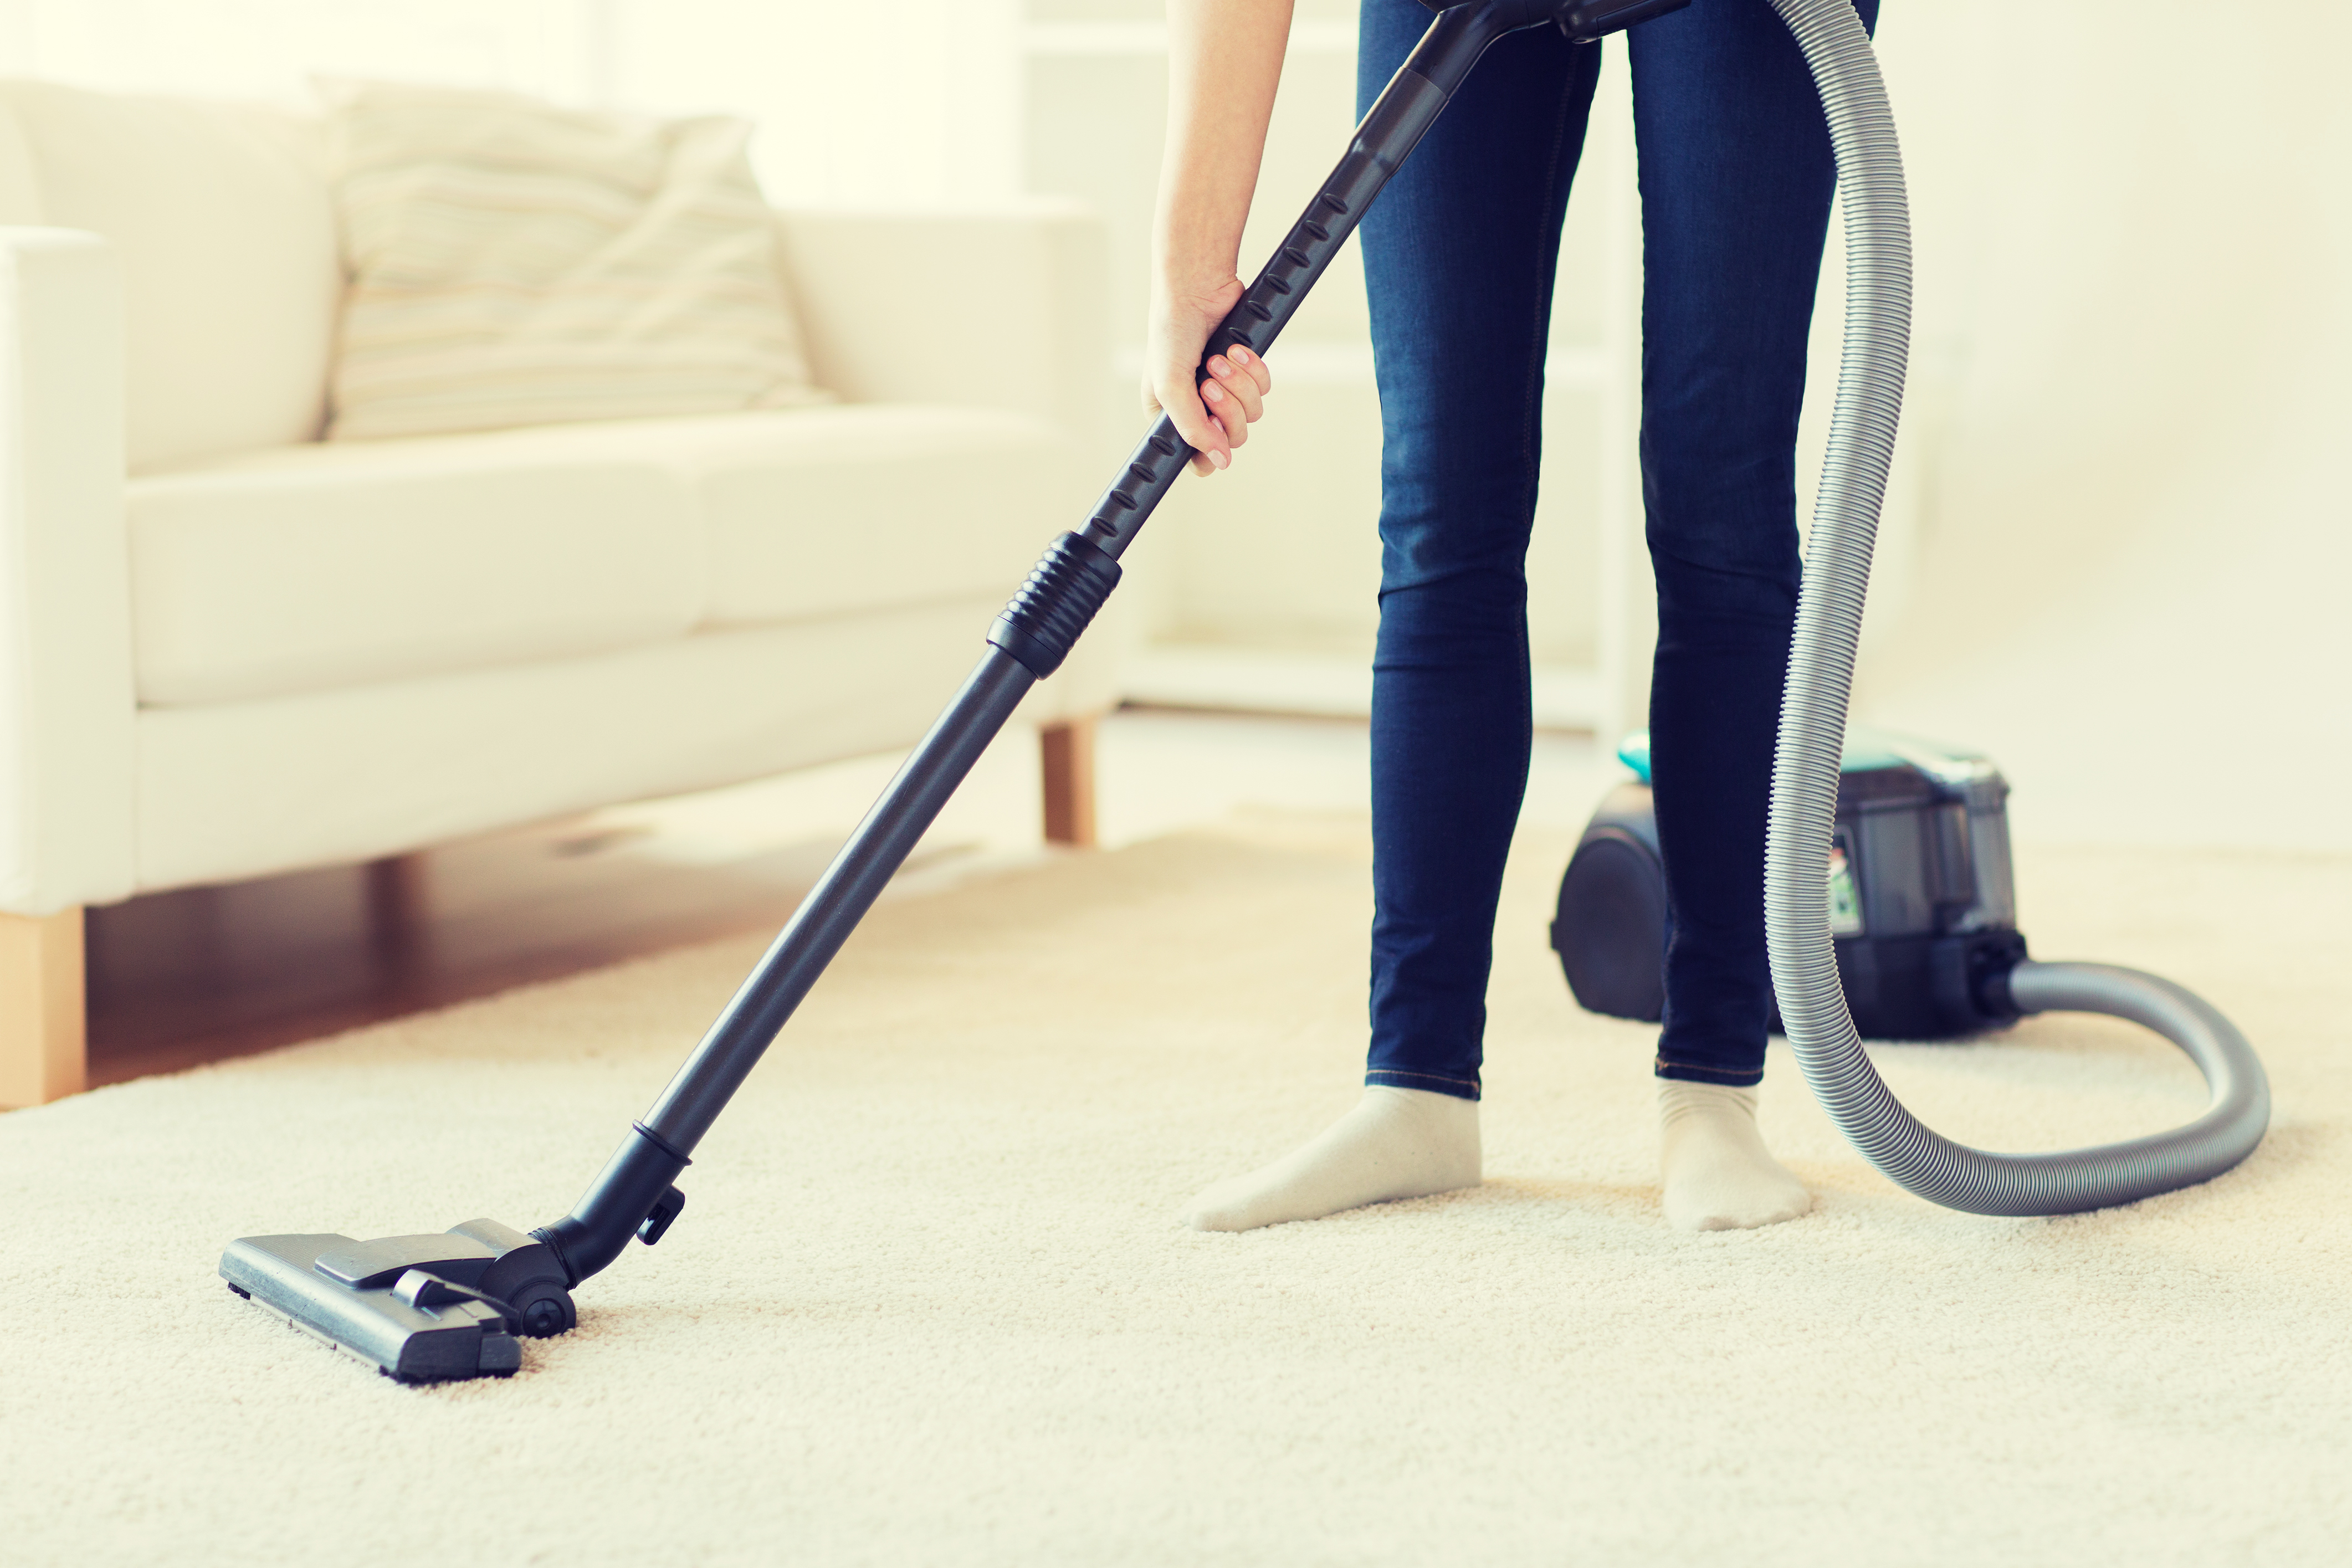 Few Key Benefits To Include While Looking For Carpet Cleaners